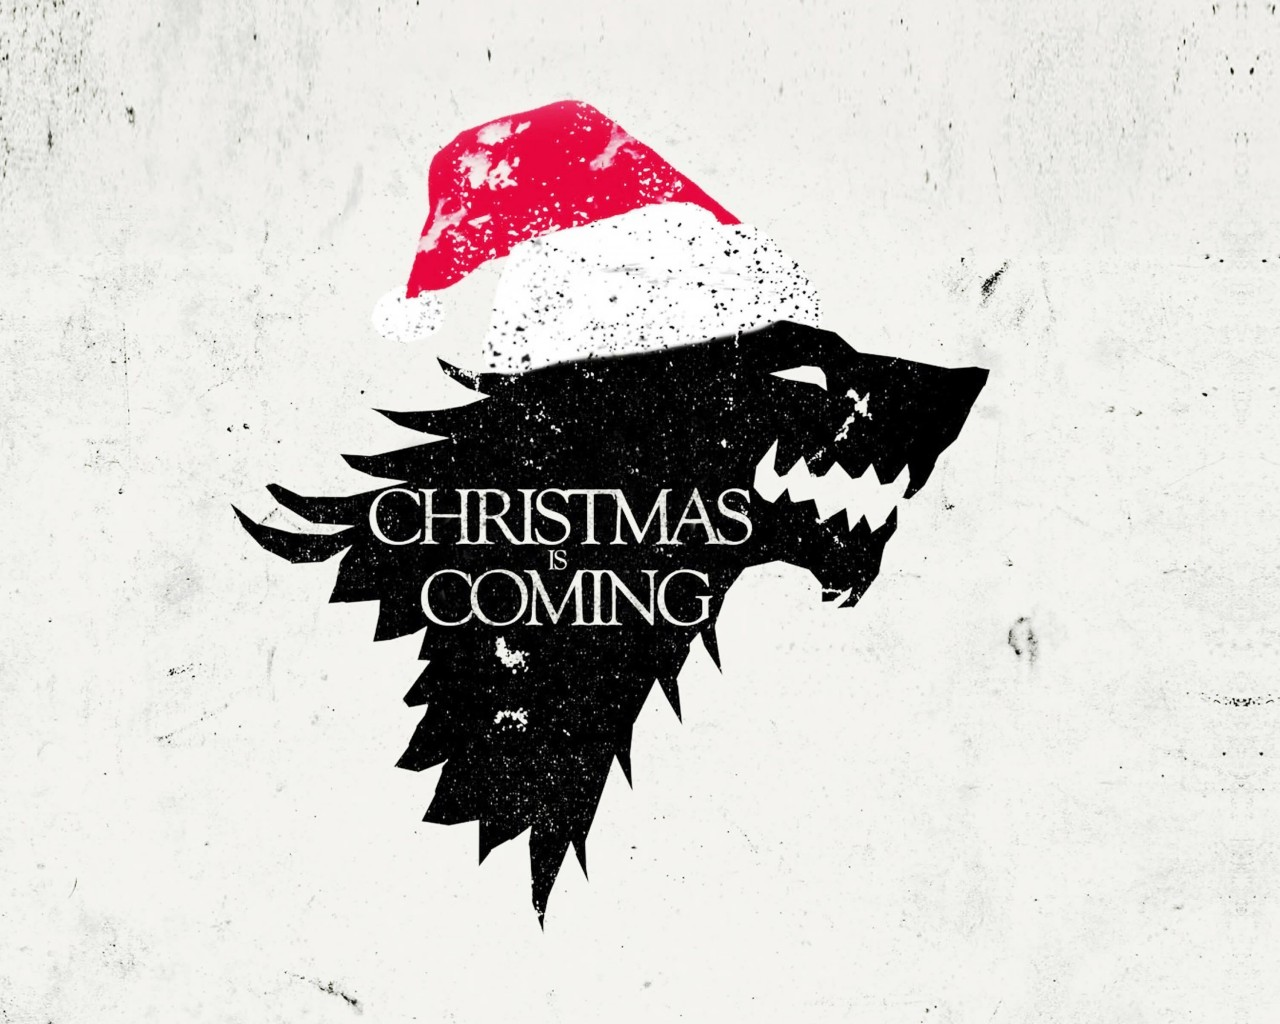 Christmas is Coming Wallpaper for Desktop 1280x1024